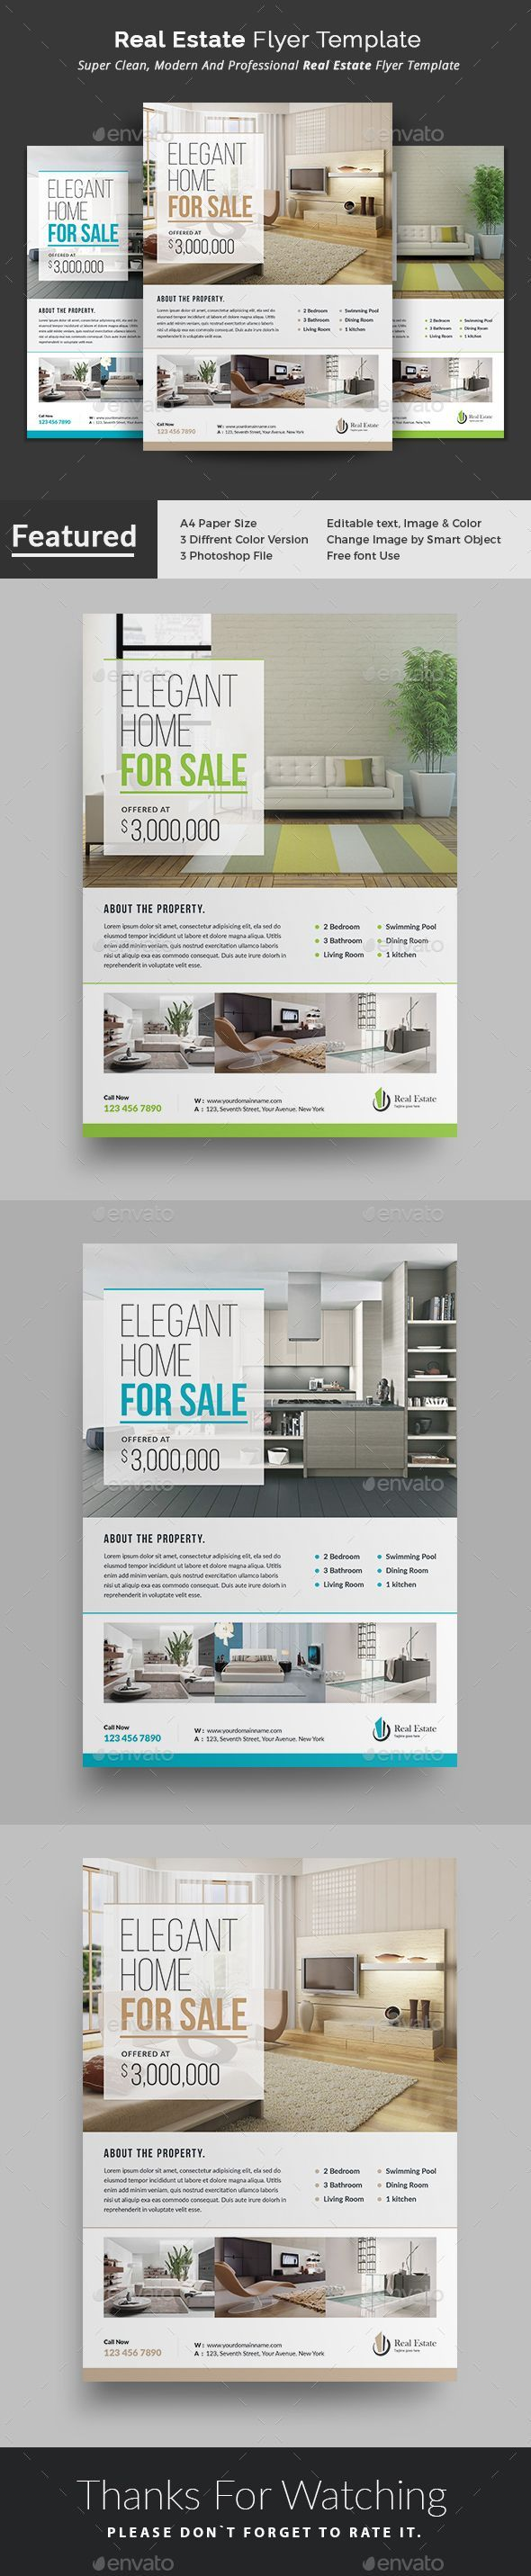 Real Estate #Flyer - #Commerce Flyers This Real Estate Flyer ...